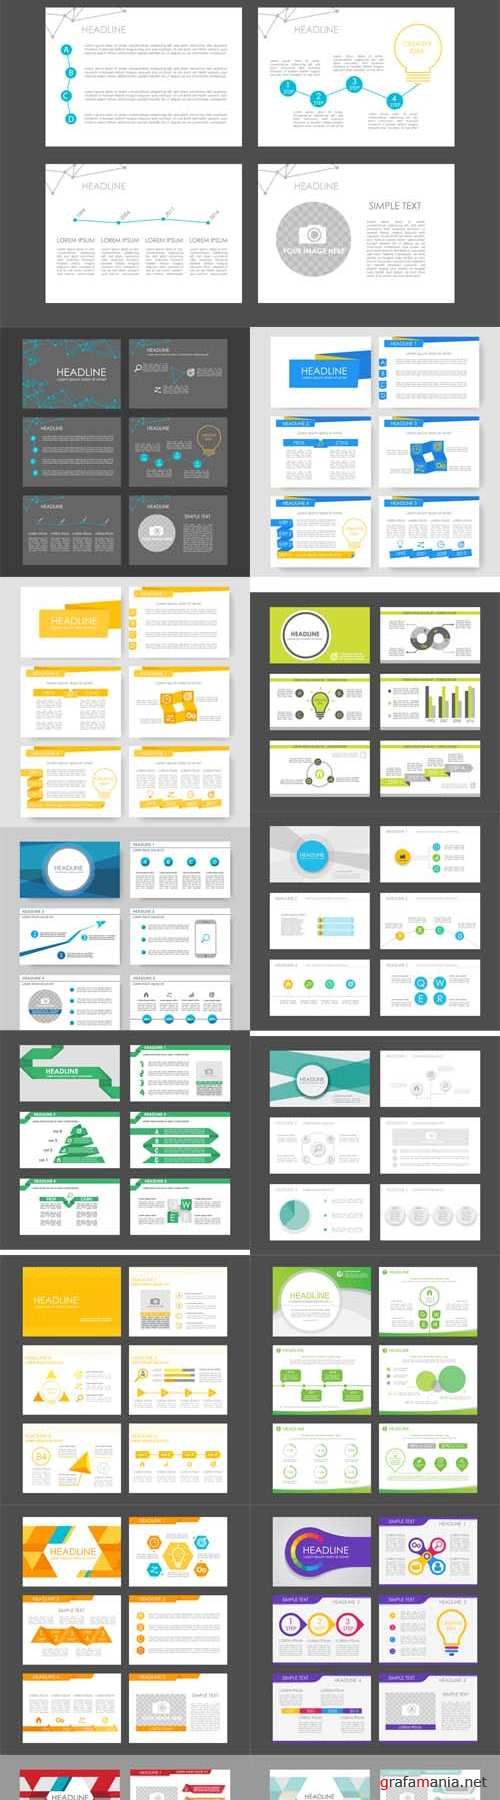 Vector Infographic Elements for Presentation Templates